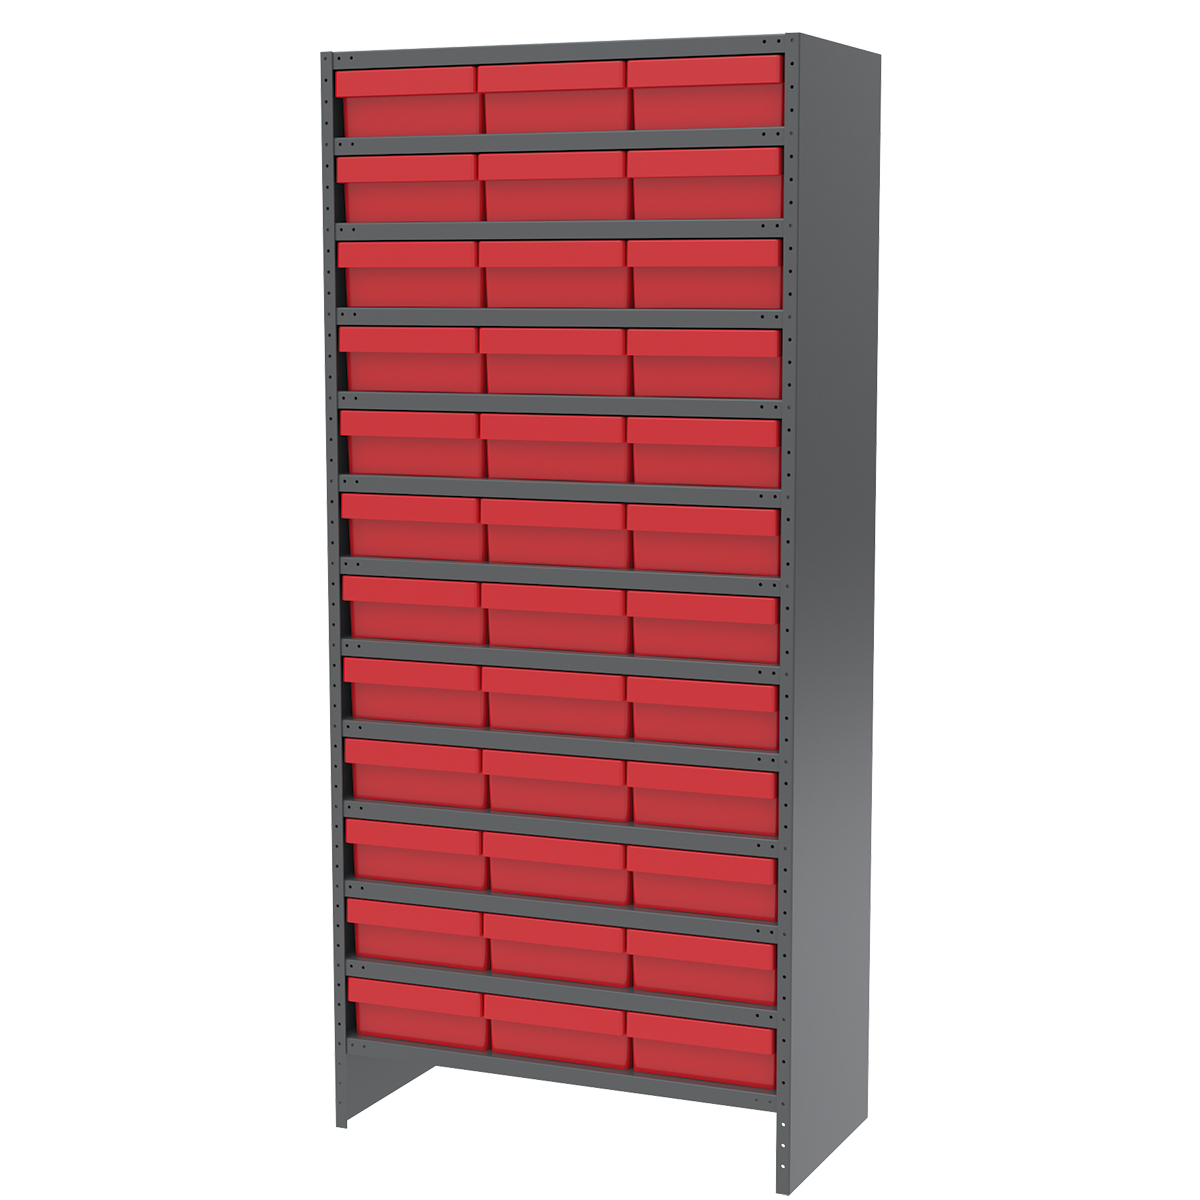 Enclosed Steel Shelving Kit, 18x36x79, 36 AkroDrawers, Gray/Red.  This item sold in carton quantities of 1.